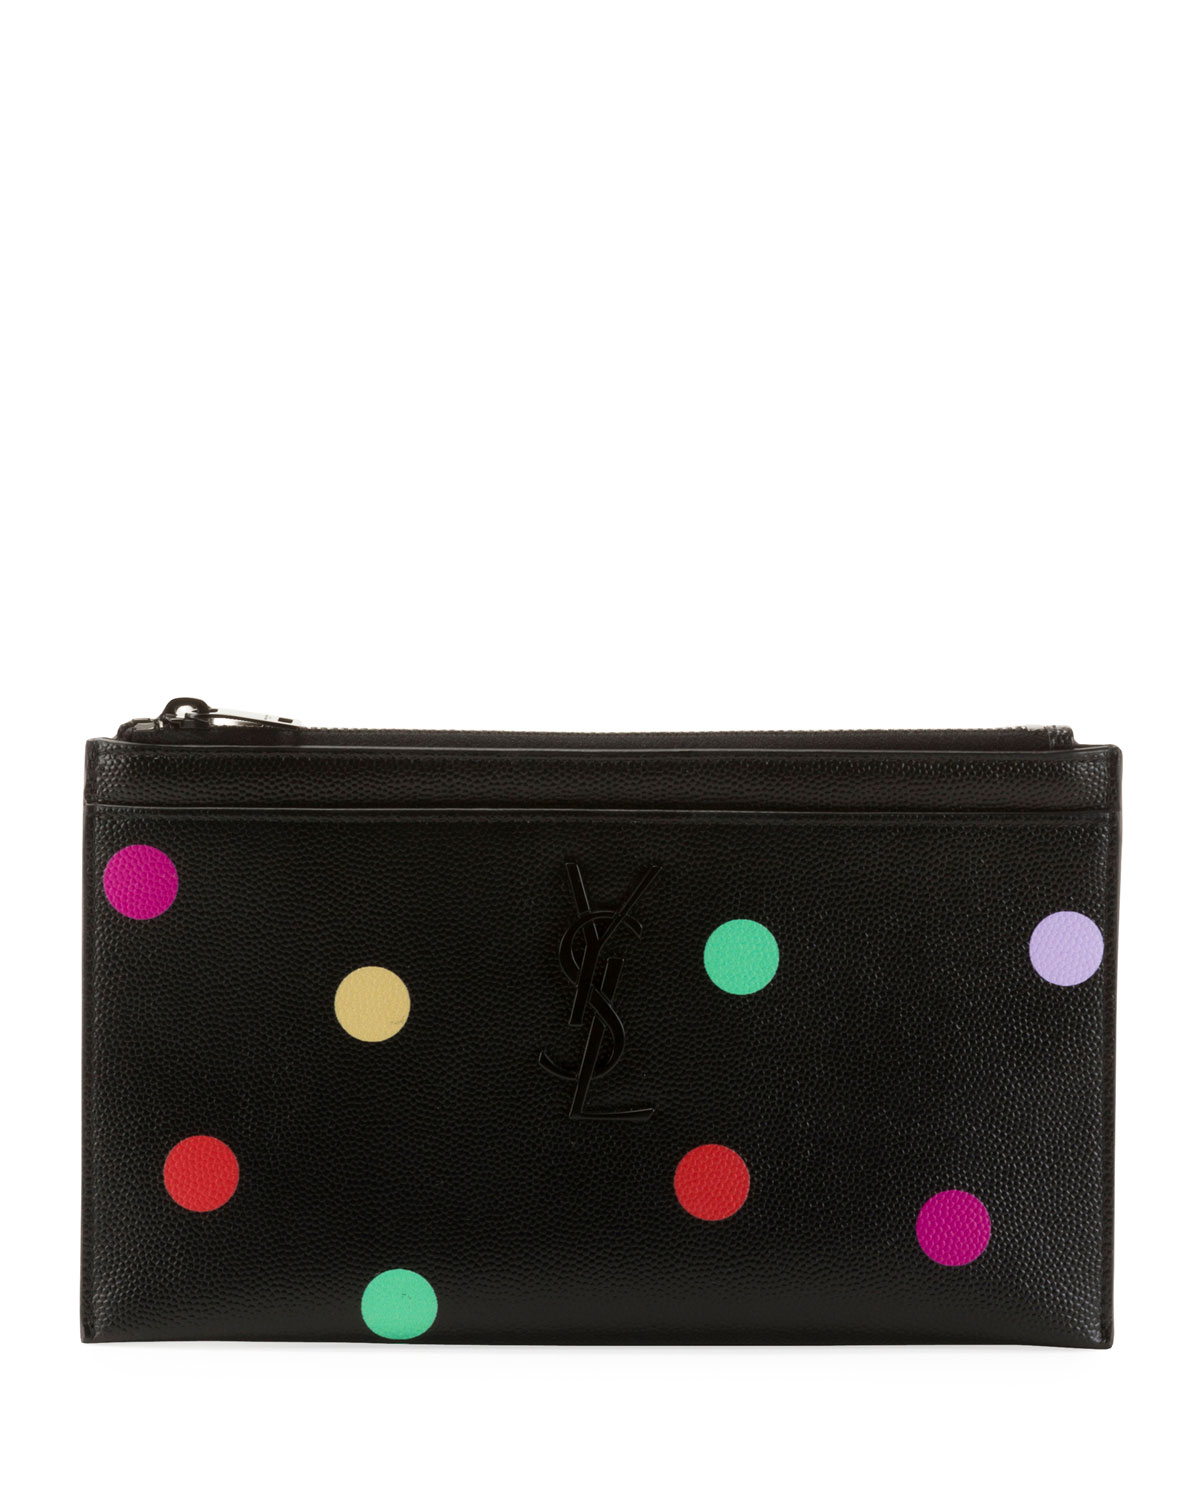 98146a6a1da2 Saint Laurent YSL Monogram Polka-Dot Zip Pouch Wallet